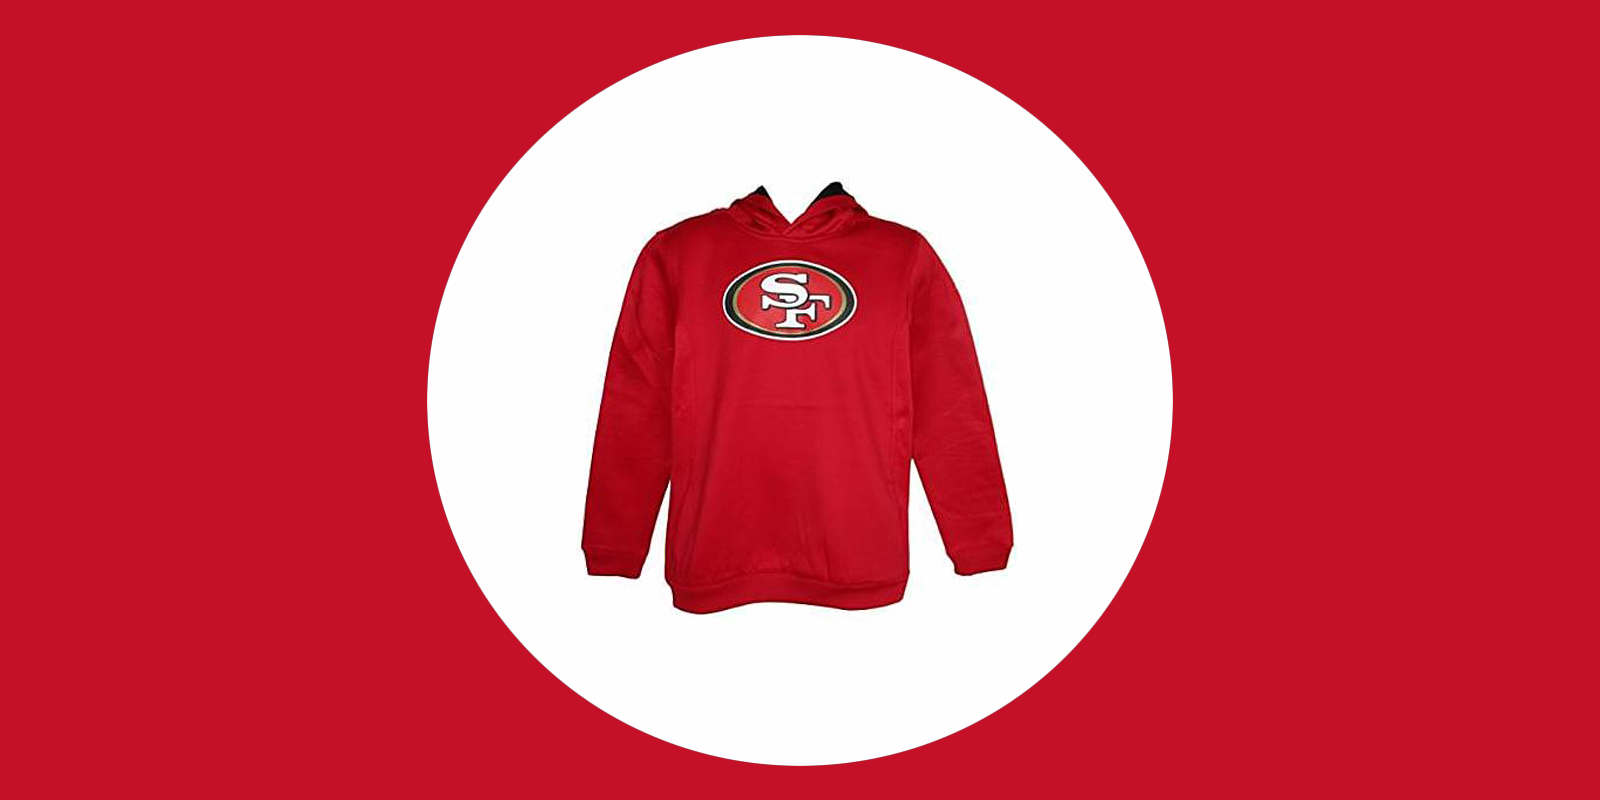 Get ready for Super Bowl with 49ers gear